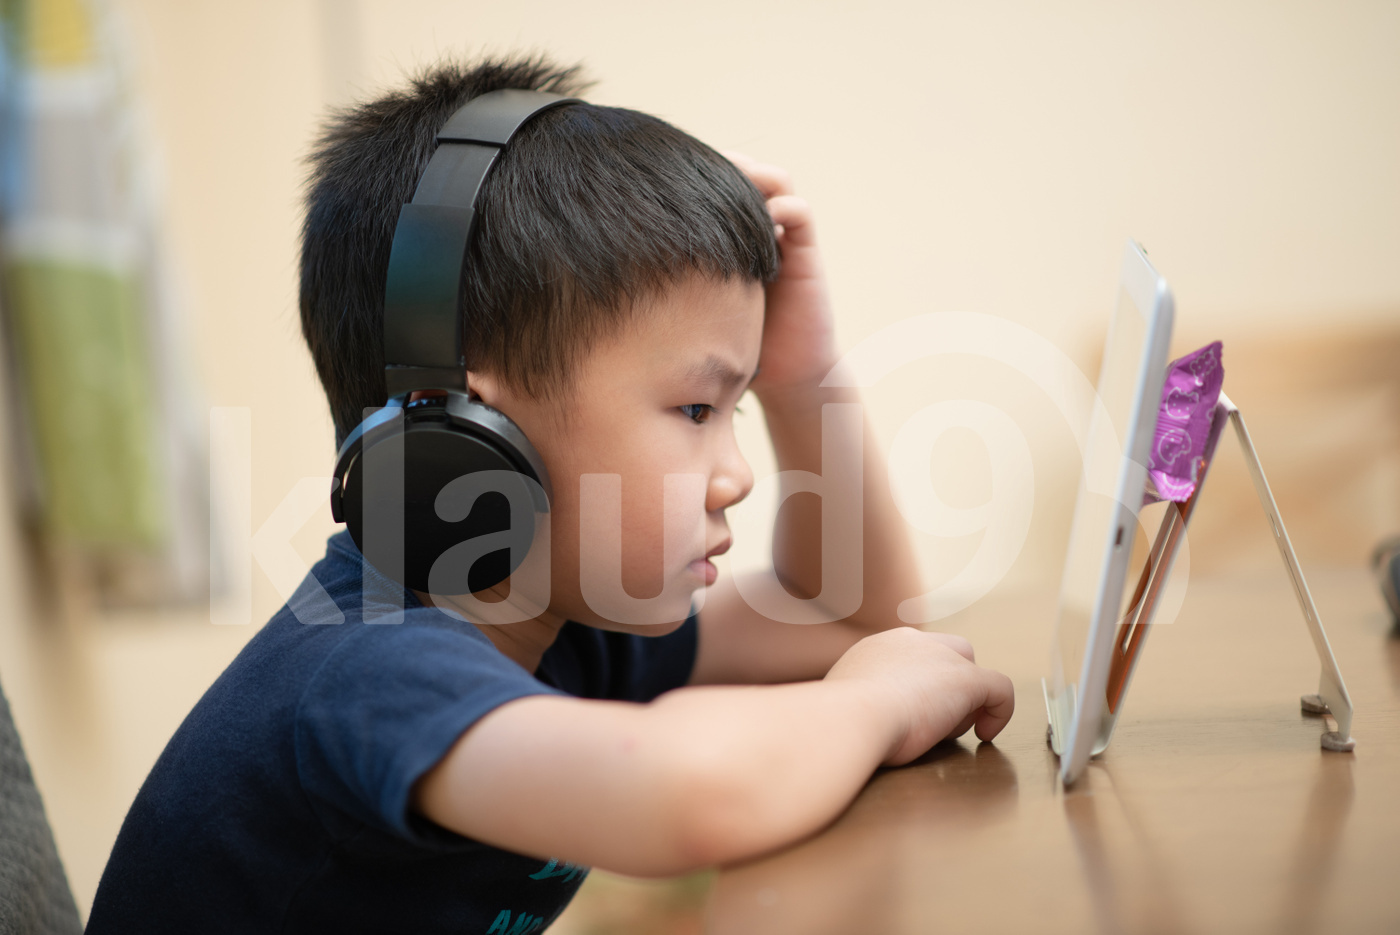 Asian child doing online learning or e-learning at home